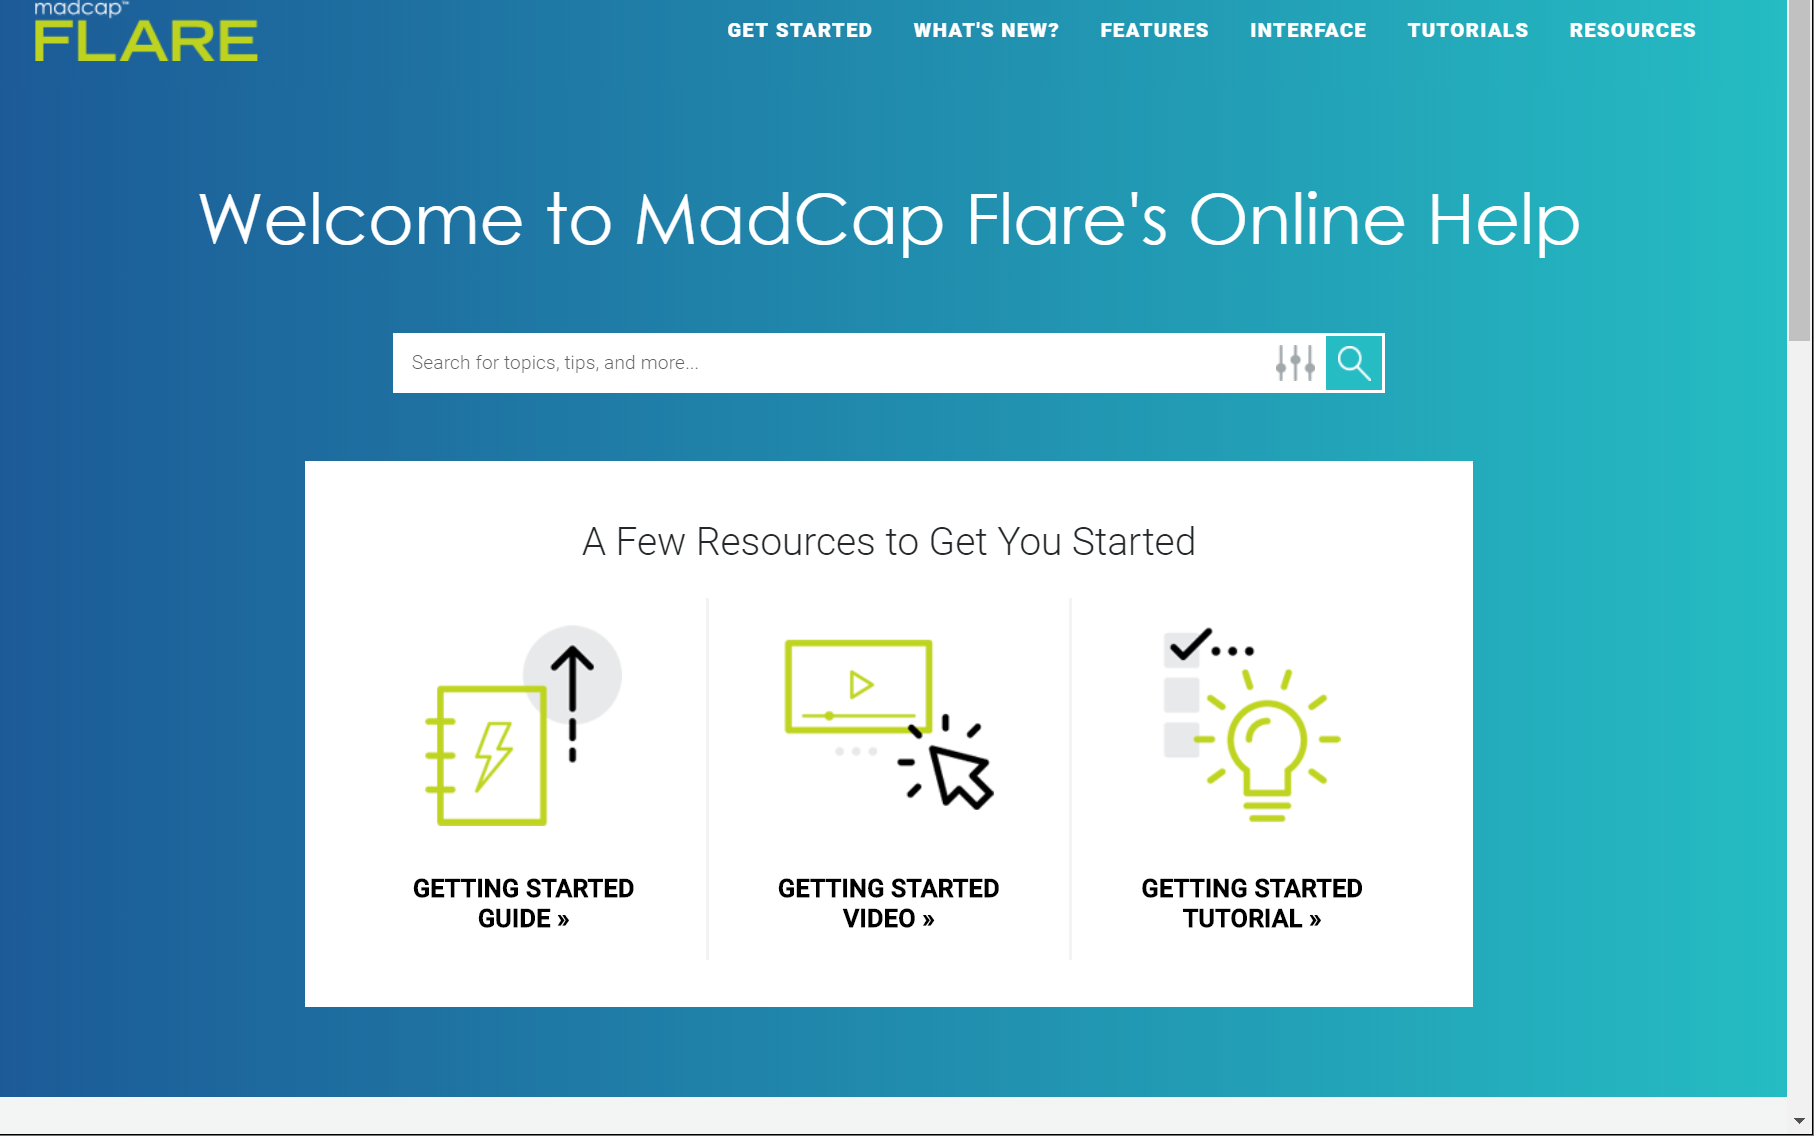 New Home page of MadCap Flare's Help